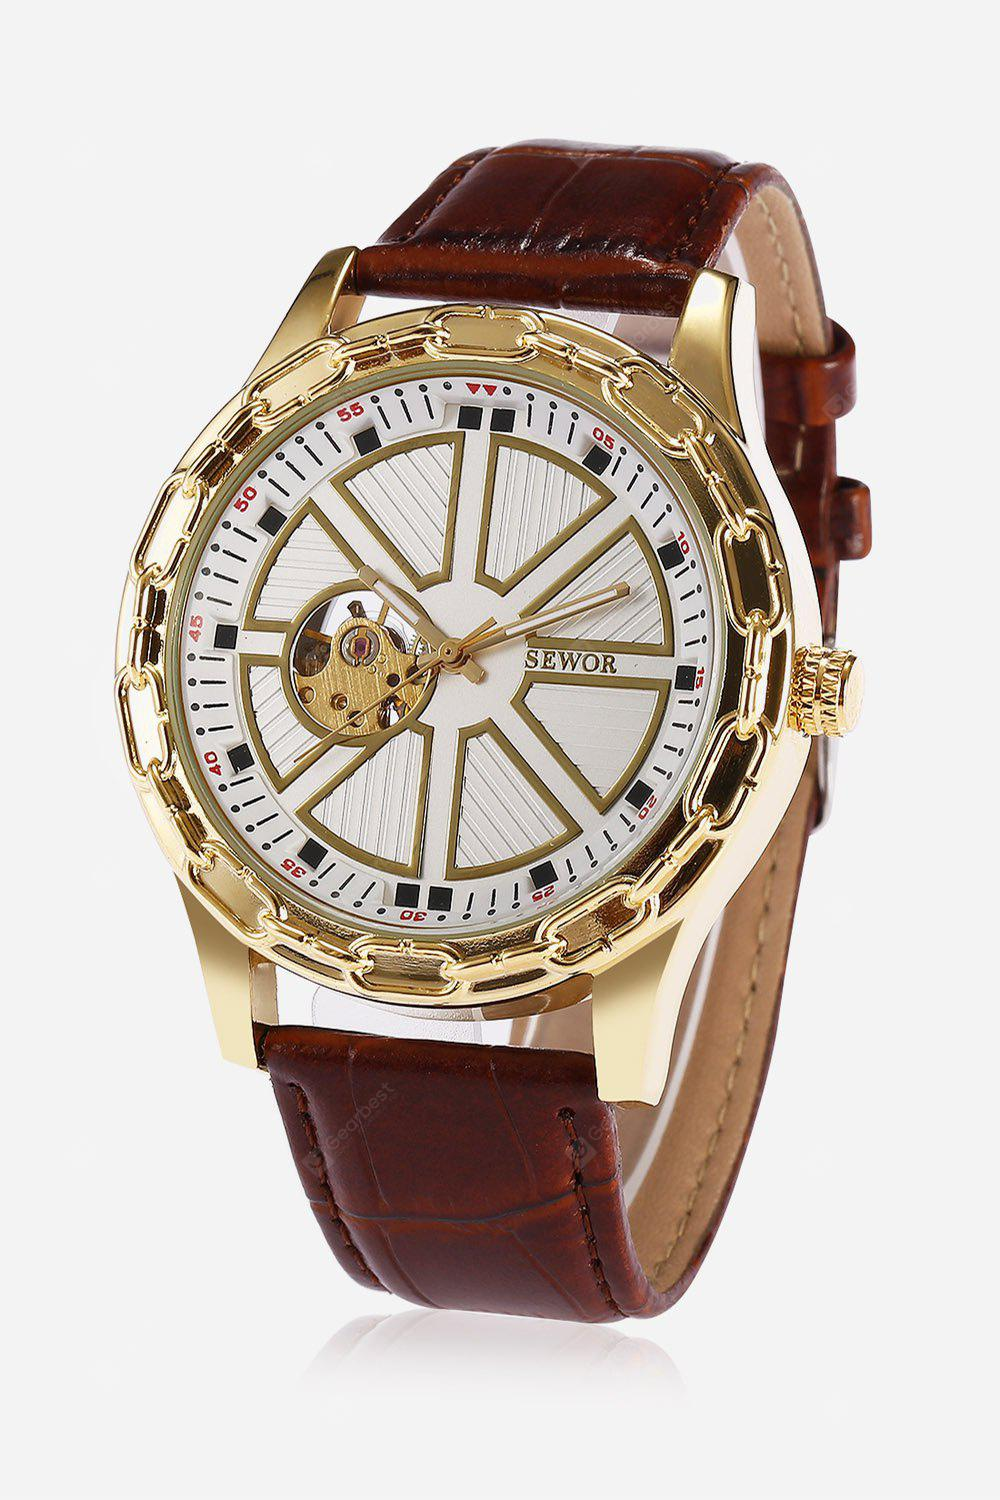 SEWOR SW0311011 Men Auto Mechanical Watch